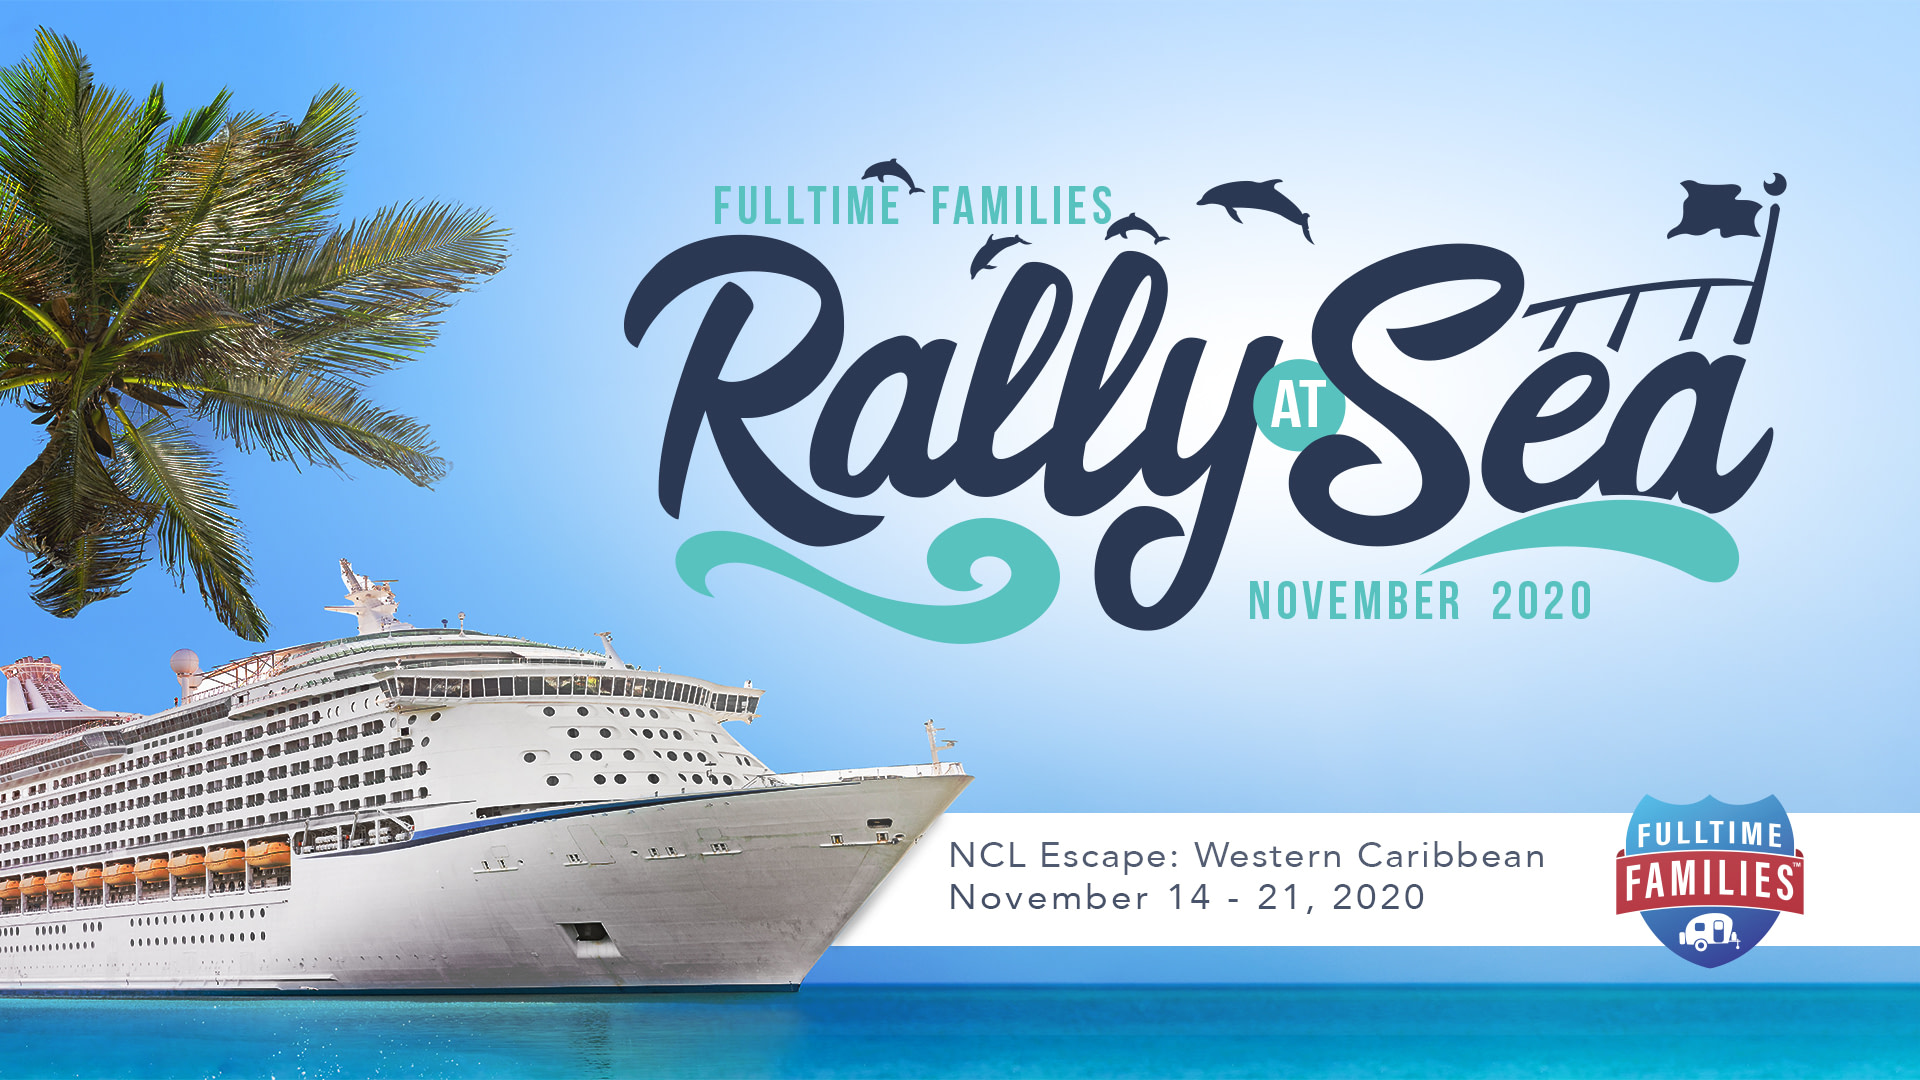 2020 Fulltime Families Rally at Sea - Fulltime Families